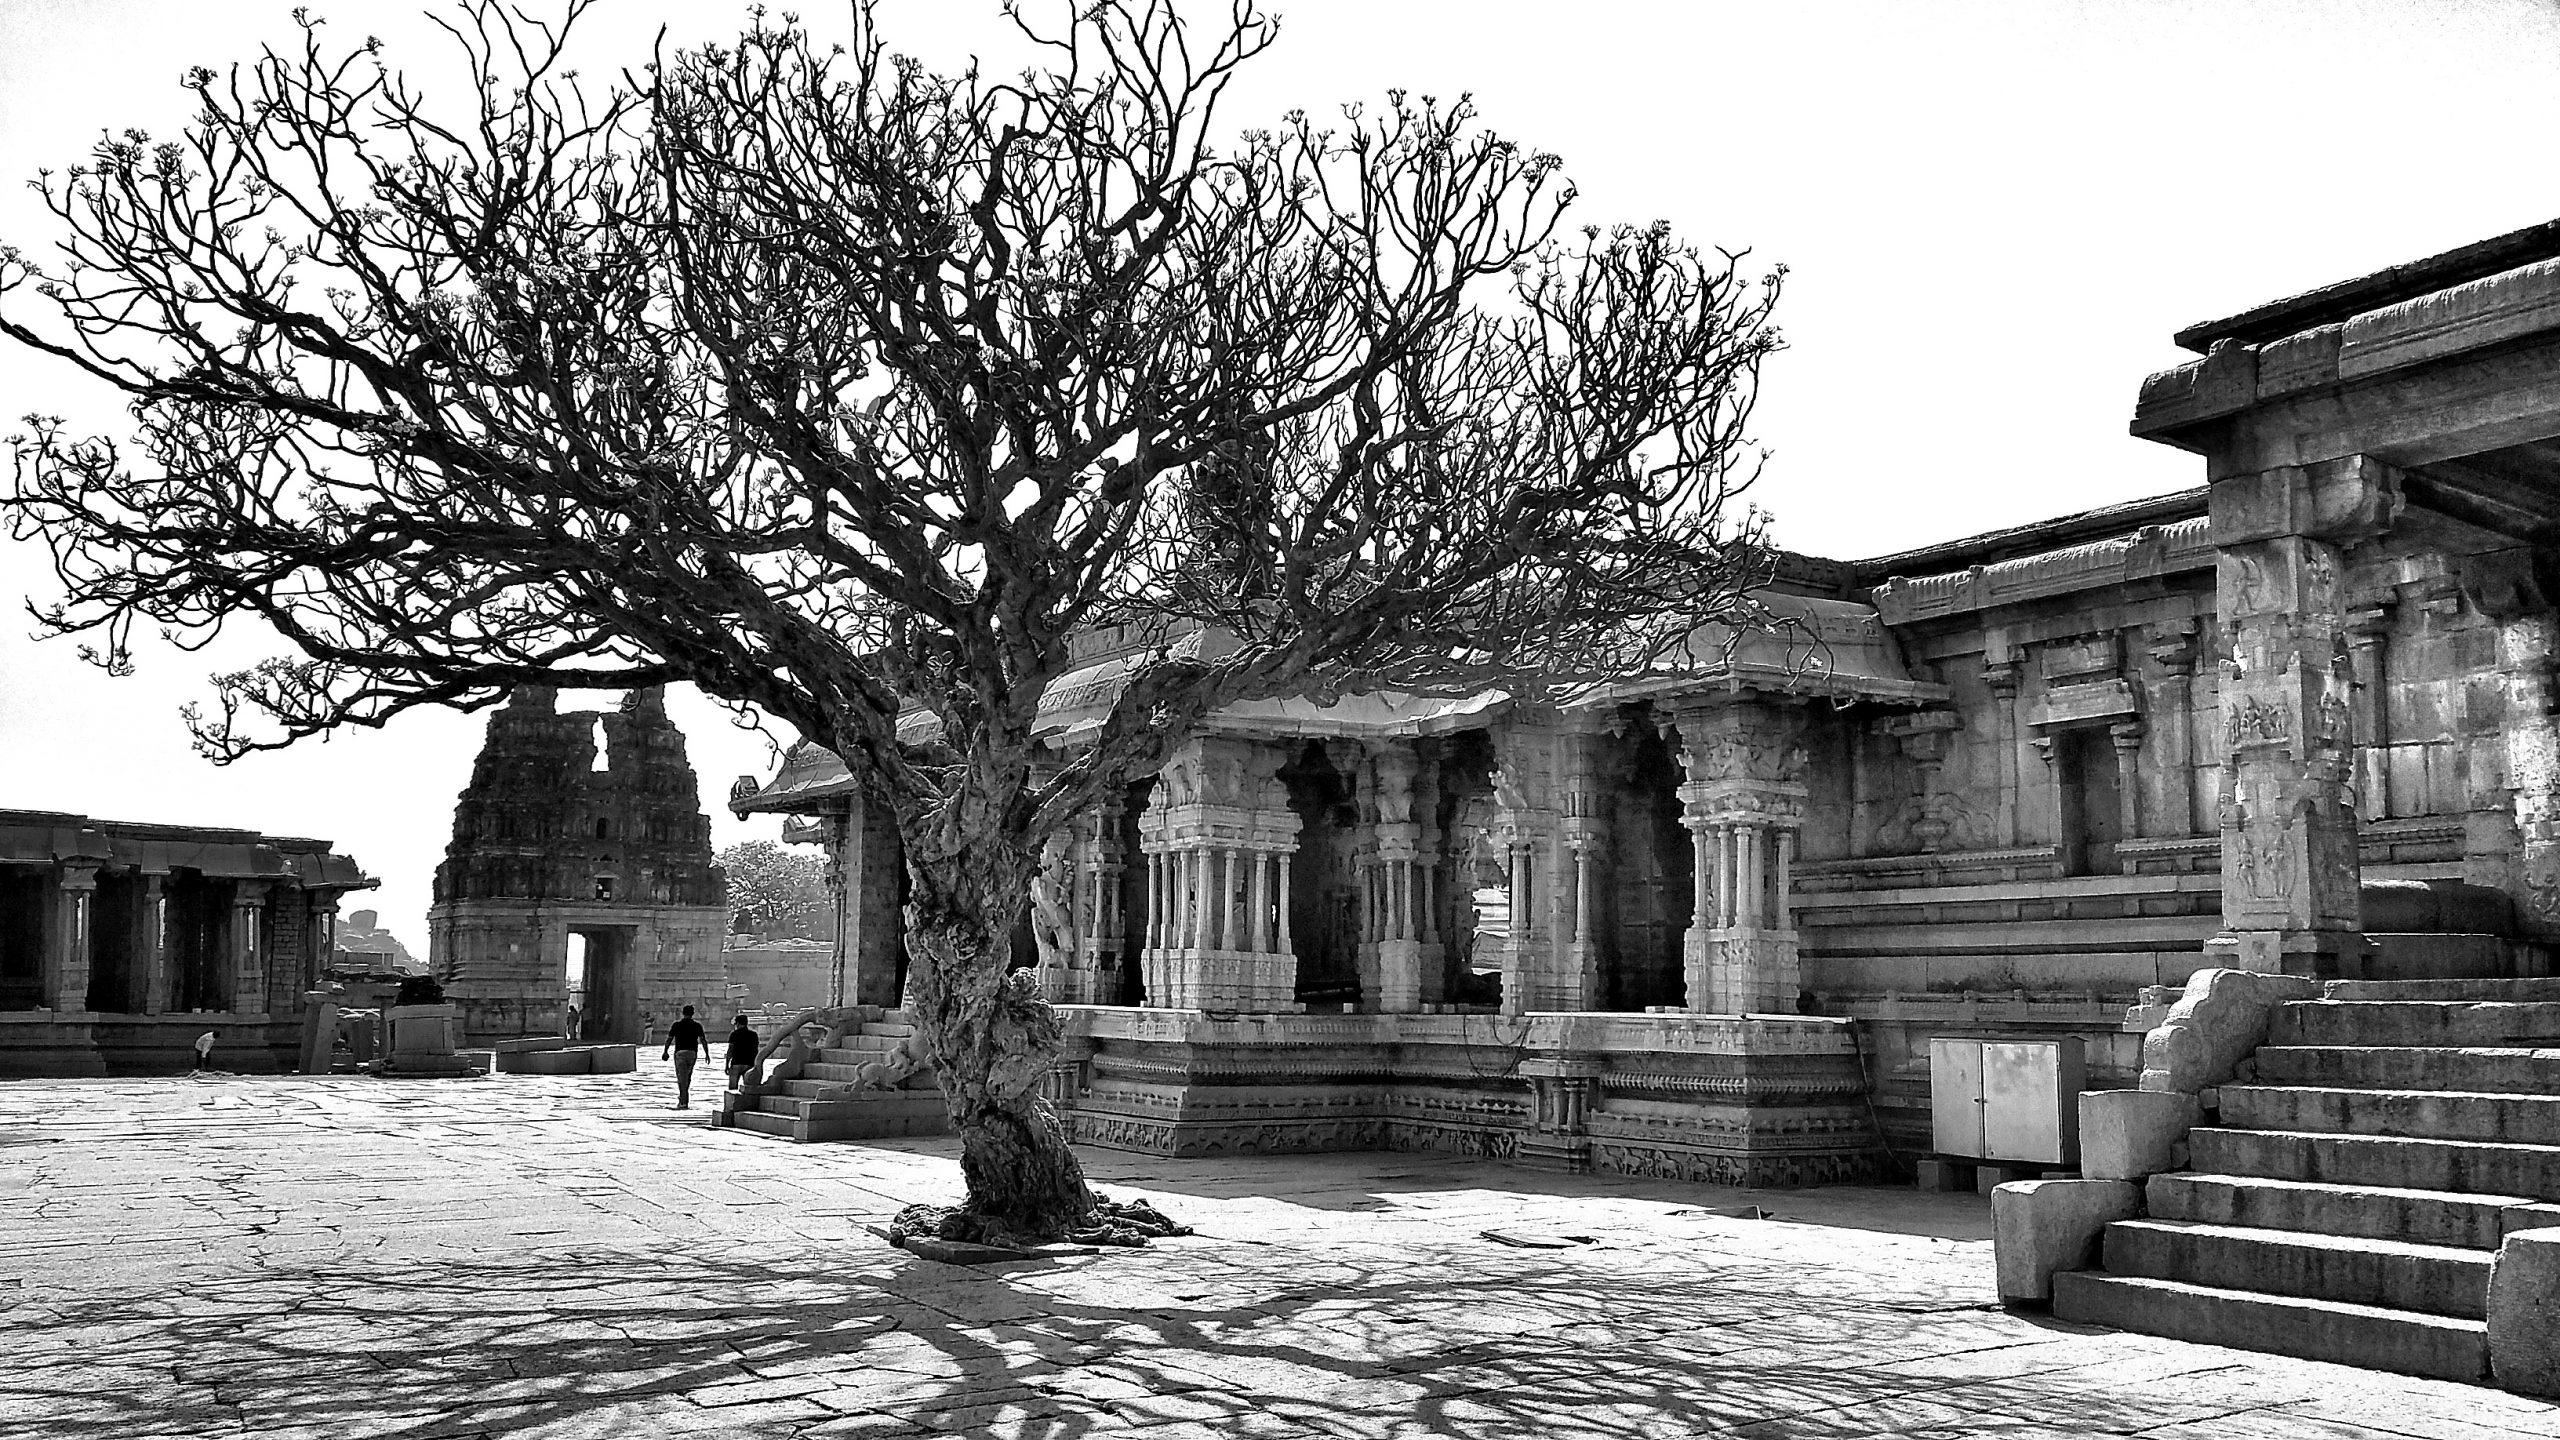 HAMPI II, 2021 | Digital print on bright white photo rag Edition of 8 + 2 AP 37.8 x 59 cm in Edition of 8 plus 2 artist's proofs Signed and numbered